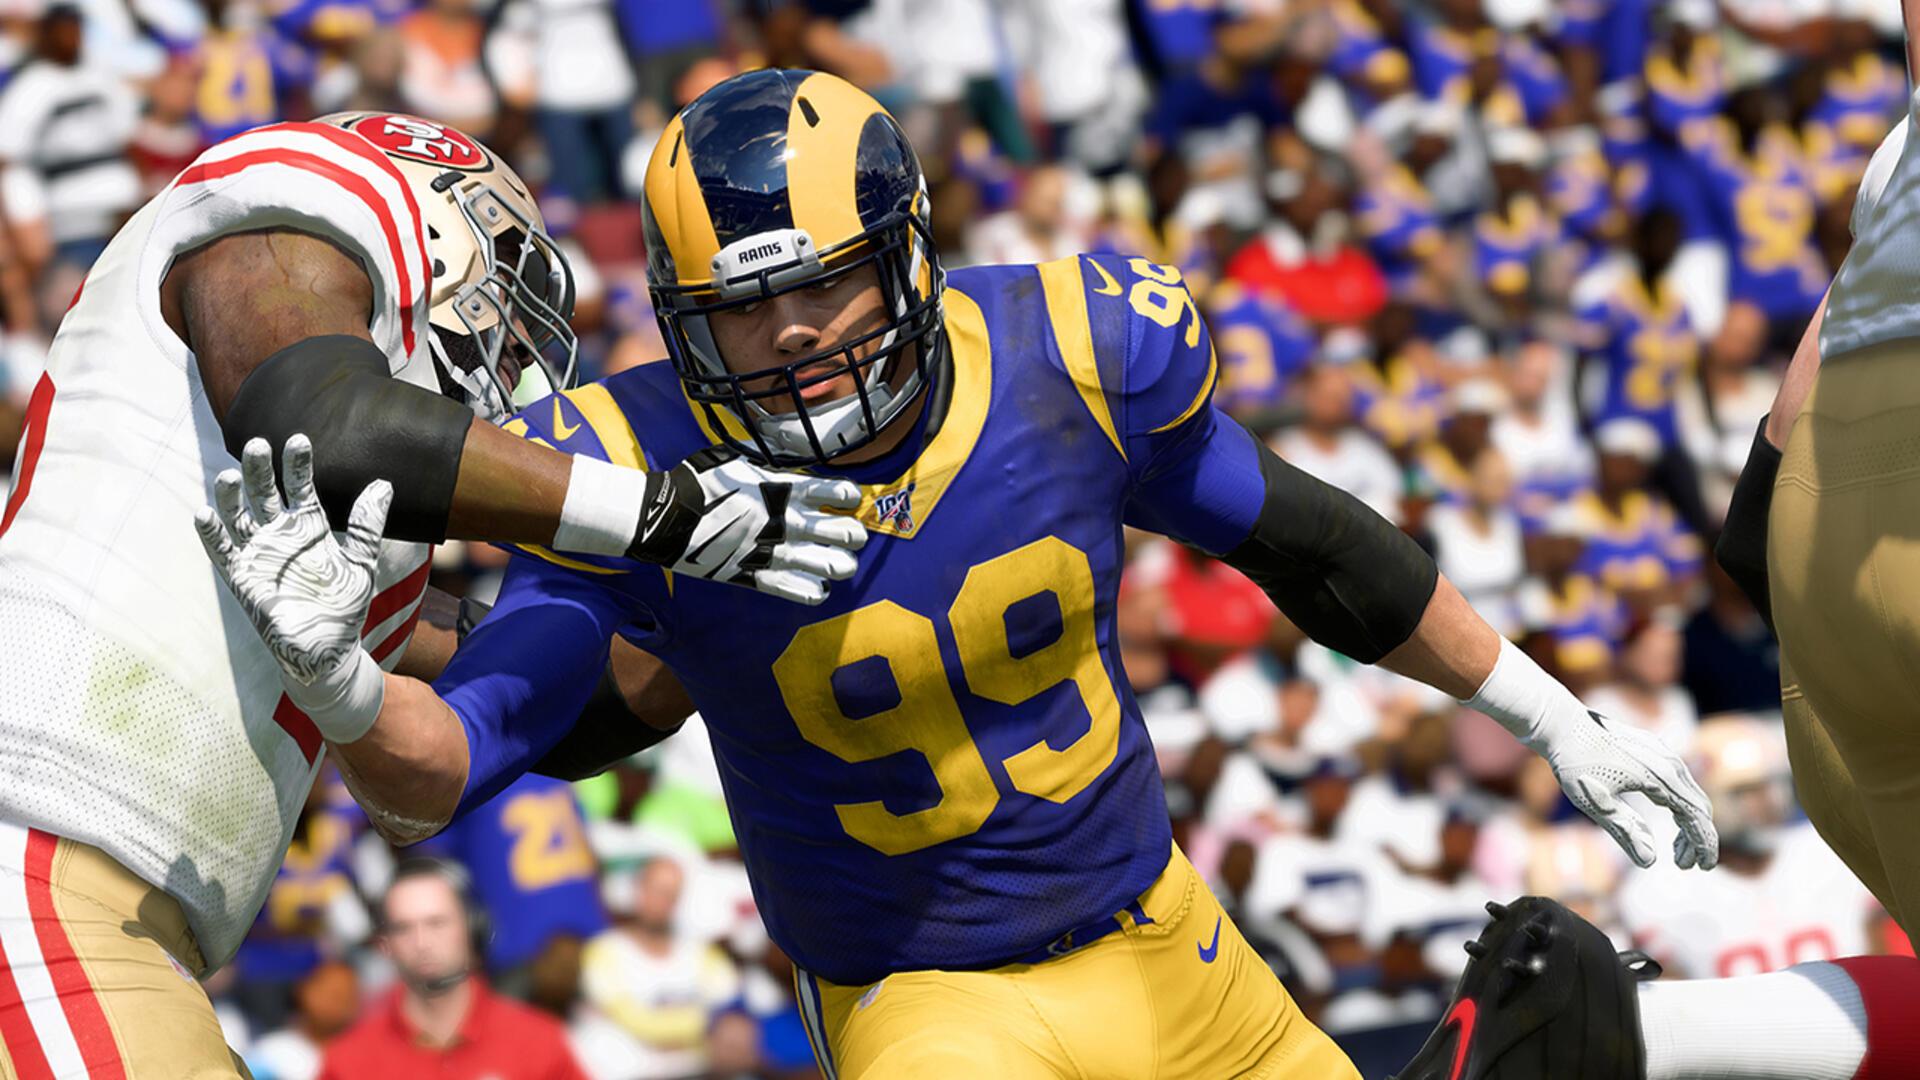 Madden 20 Franchise Mode is Finally Getting Something It's Needed for Ages: Narrative